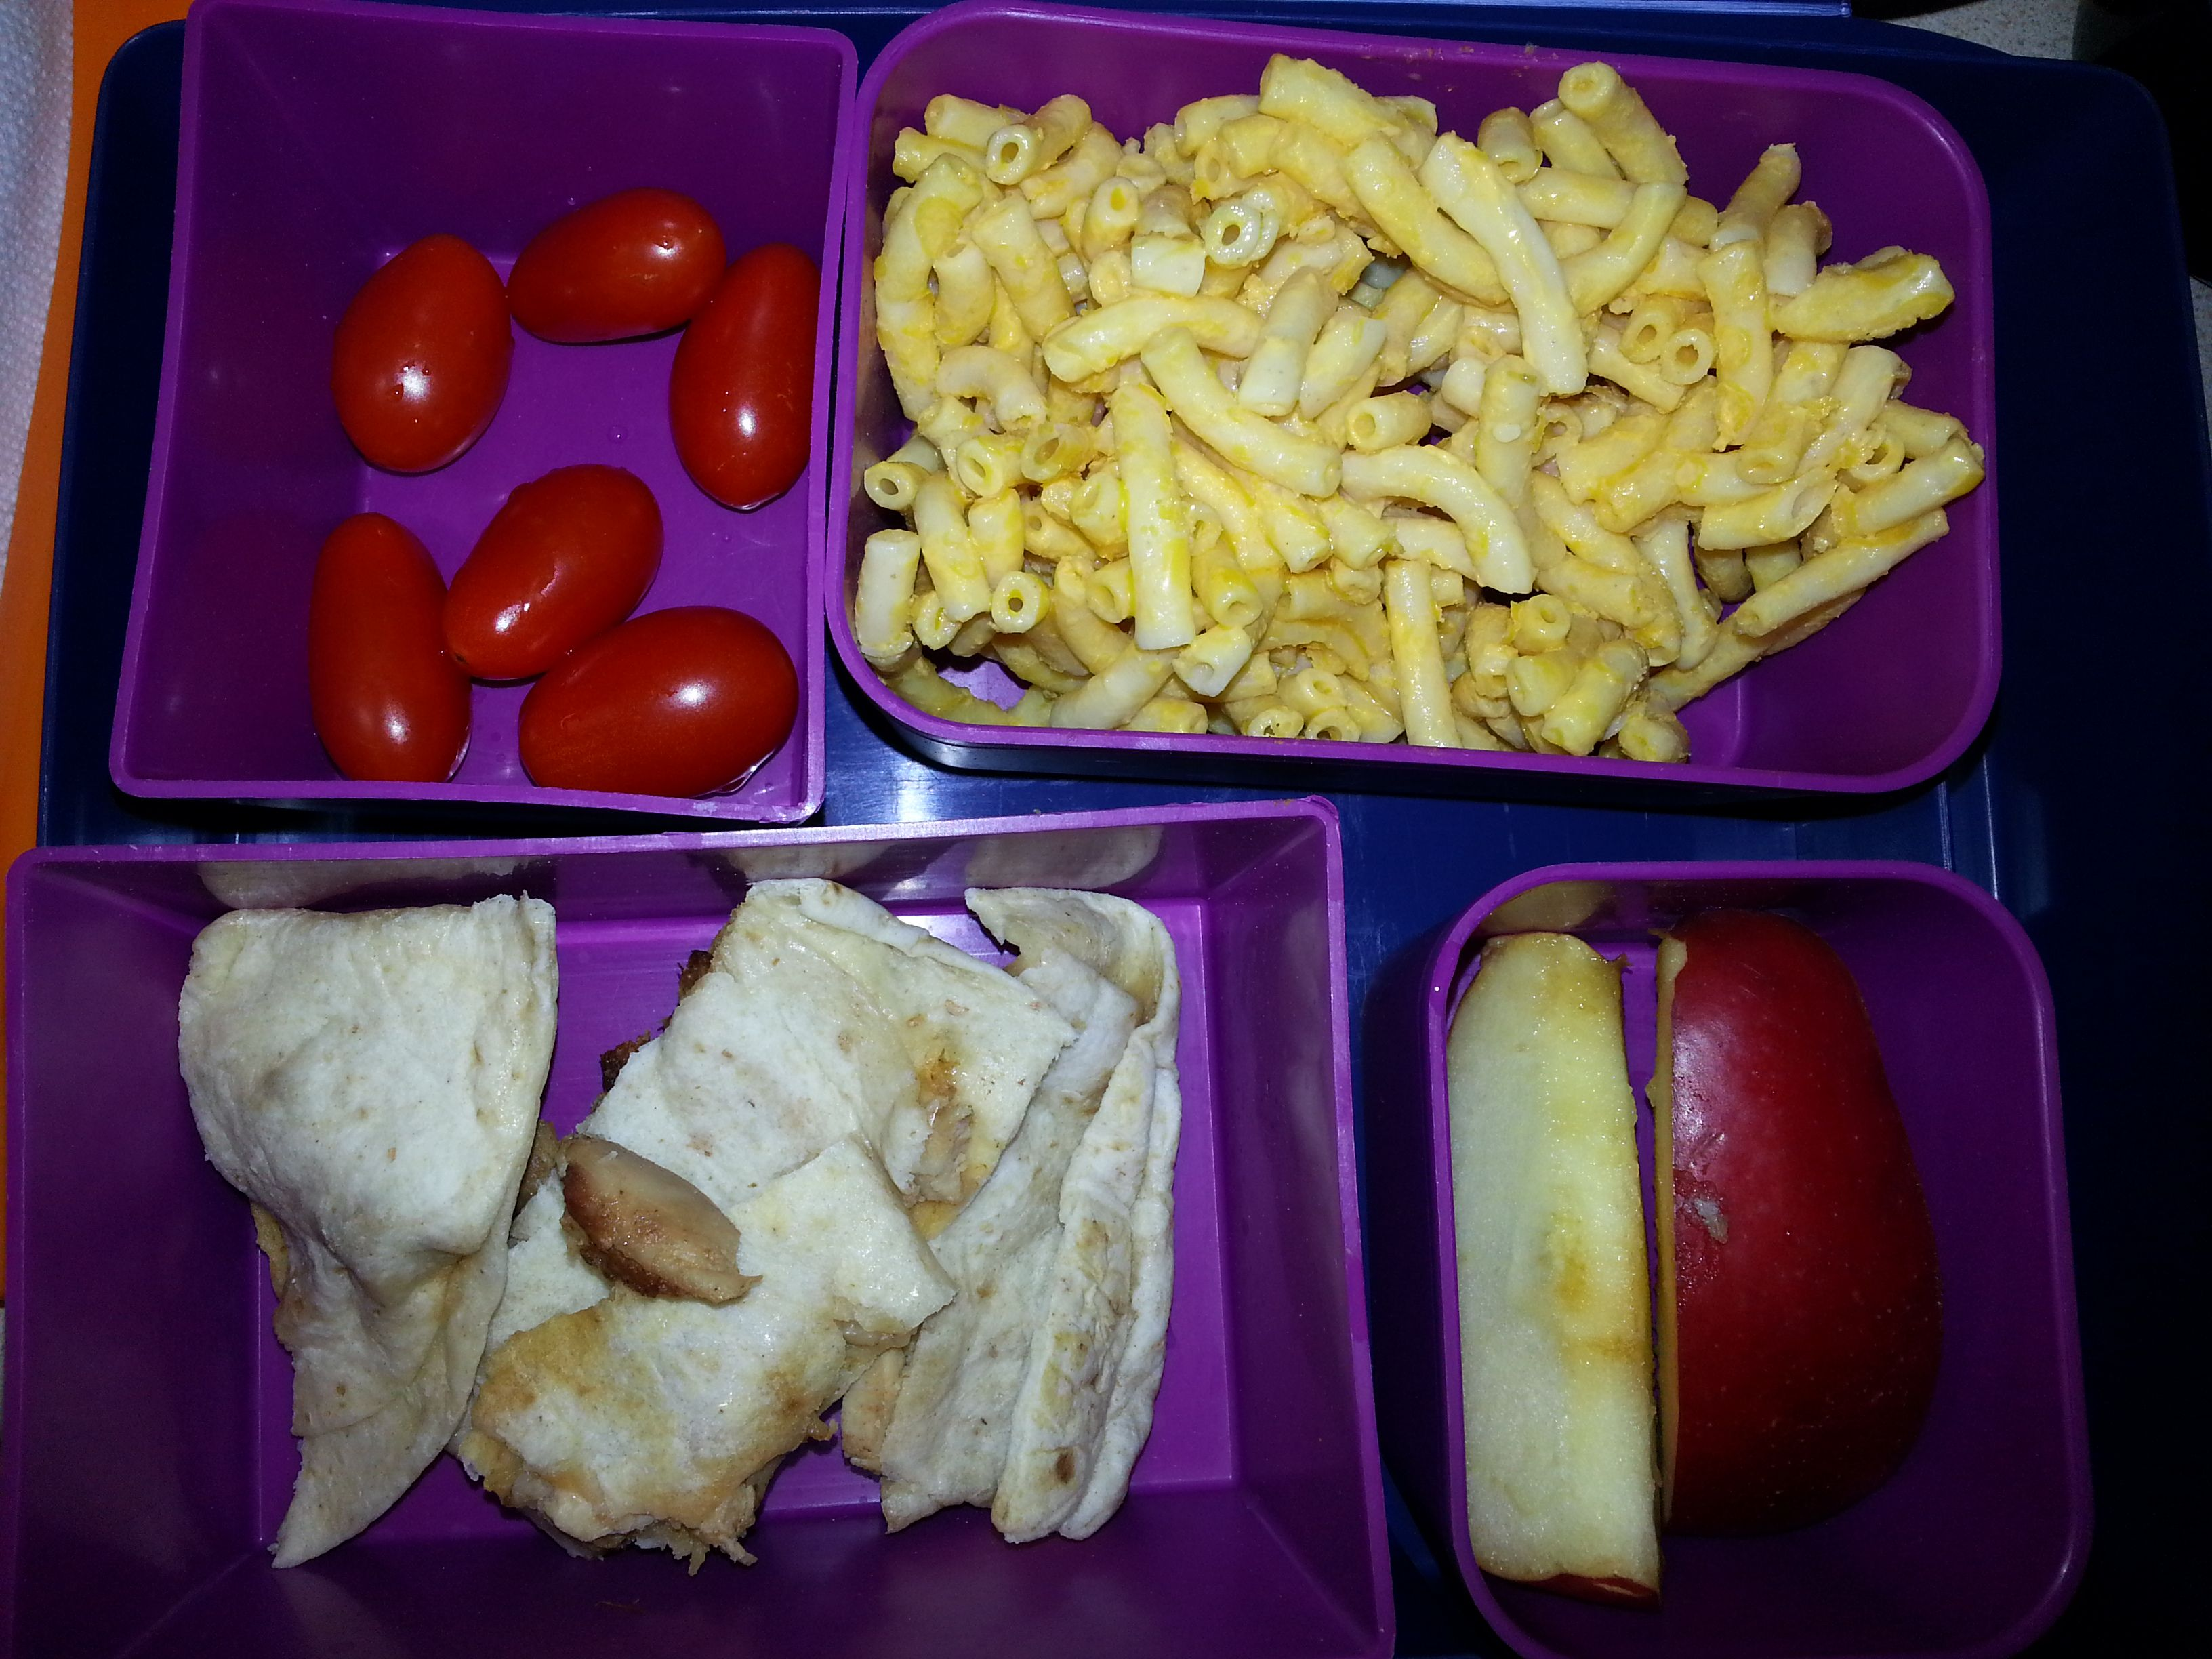 Kid Bento Lunch -Grape Tomatoes -Annie's Mac 'n Cheese -Leftover Quesadilla -Apple Slices